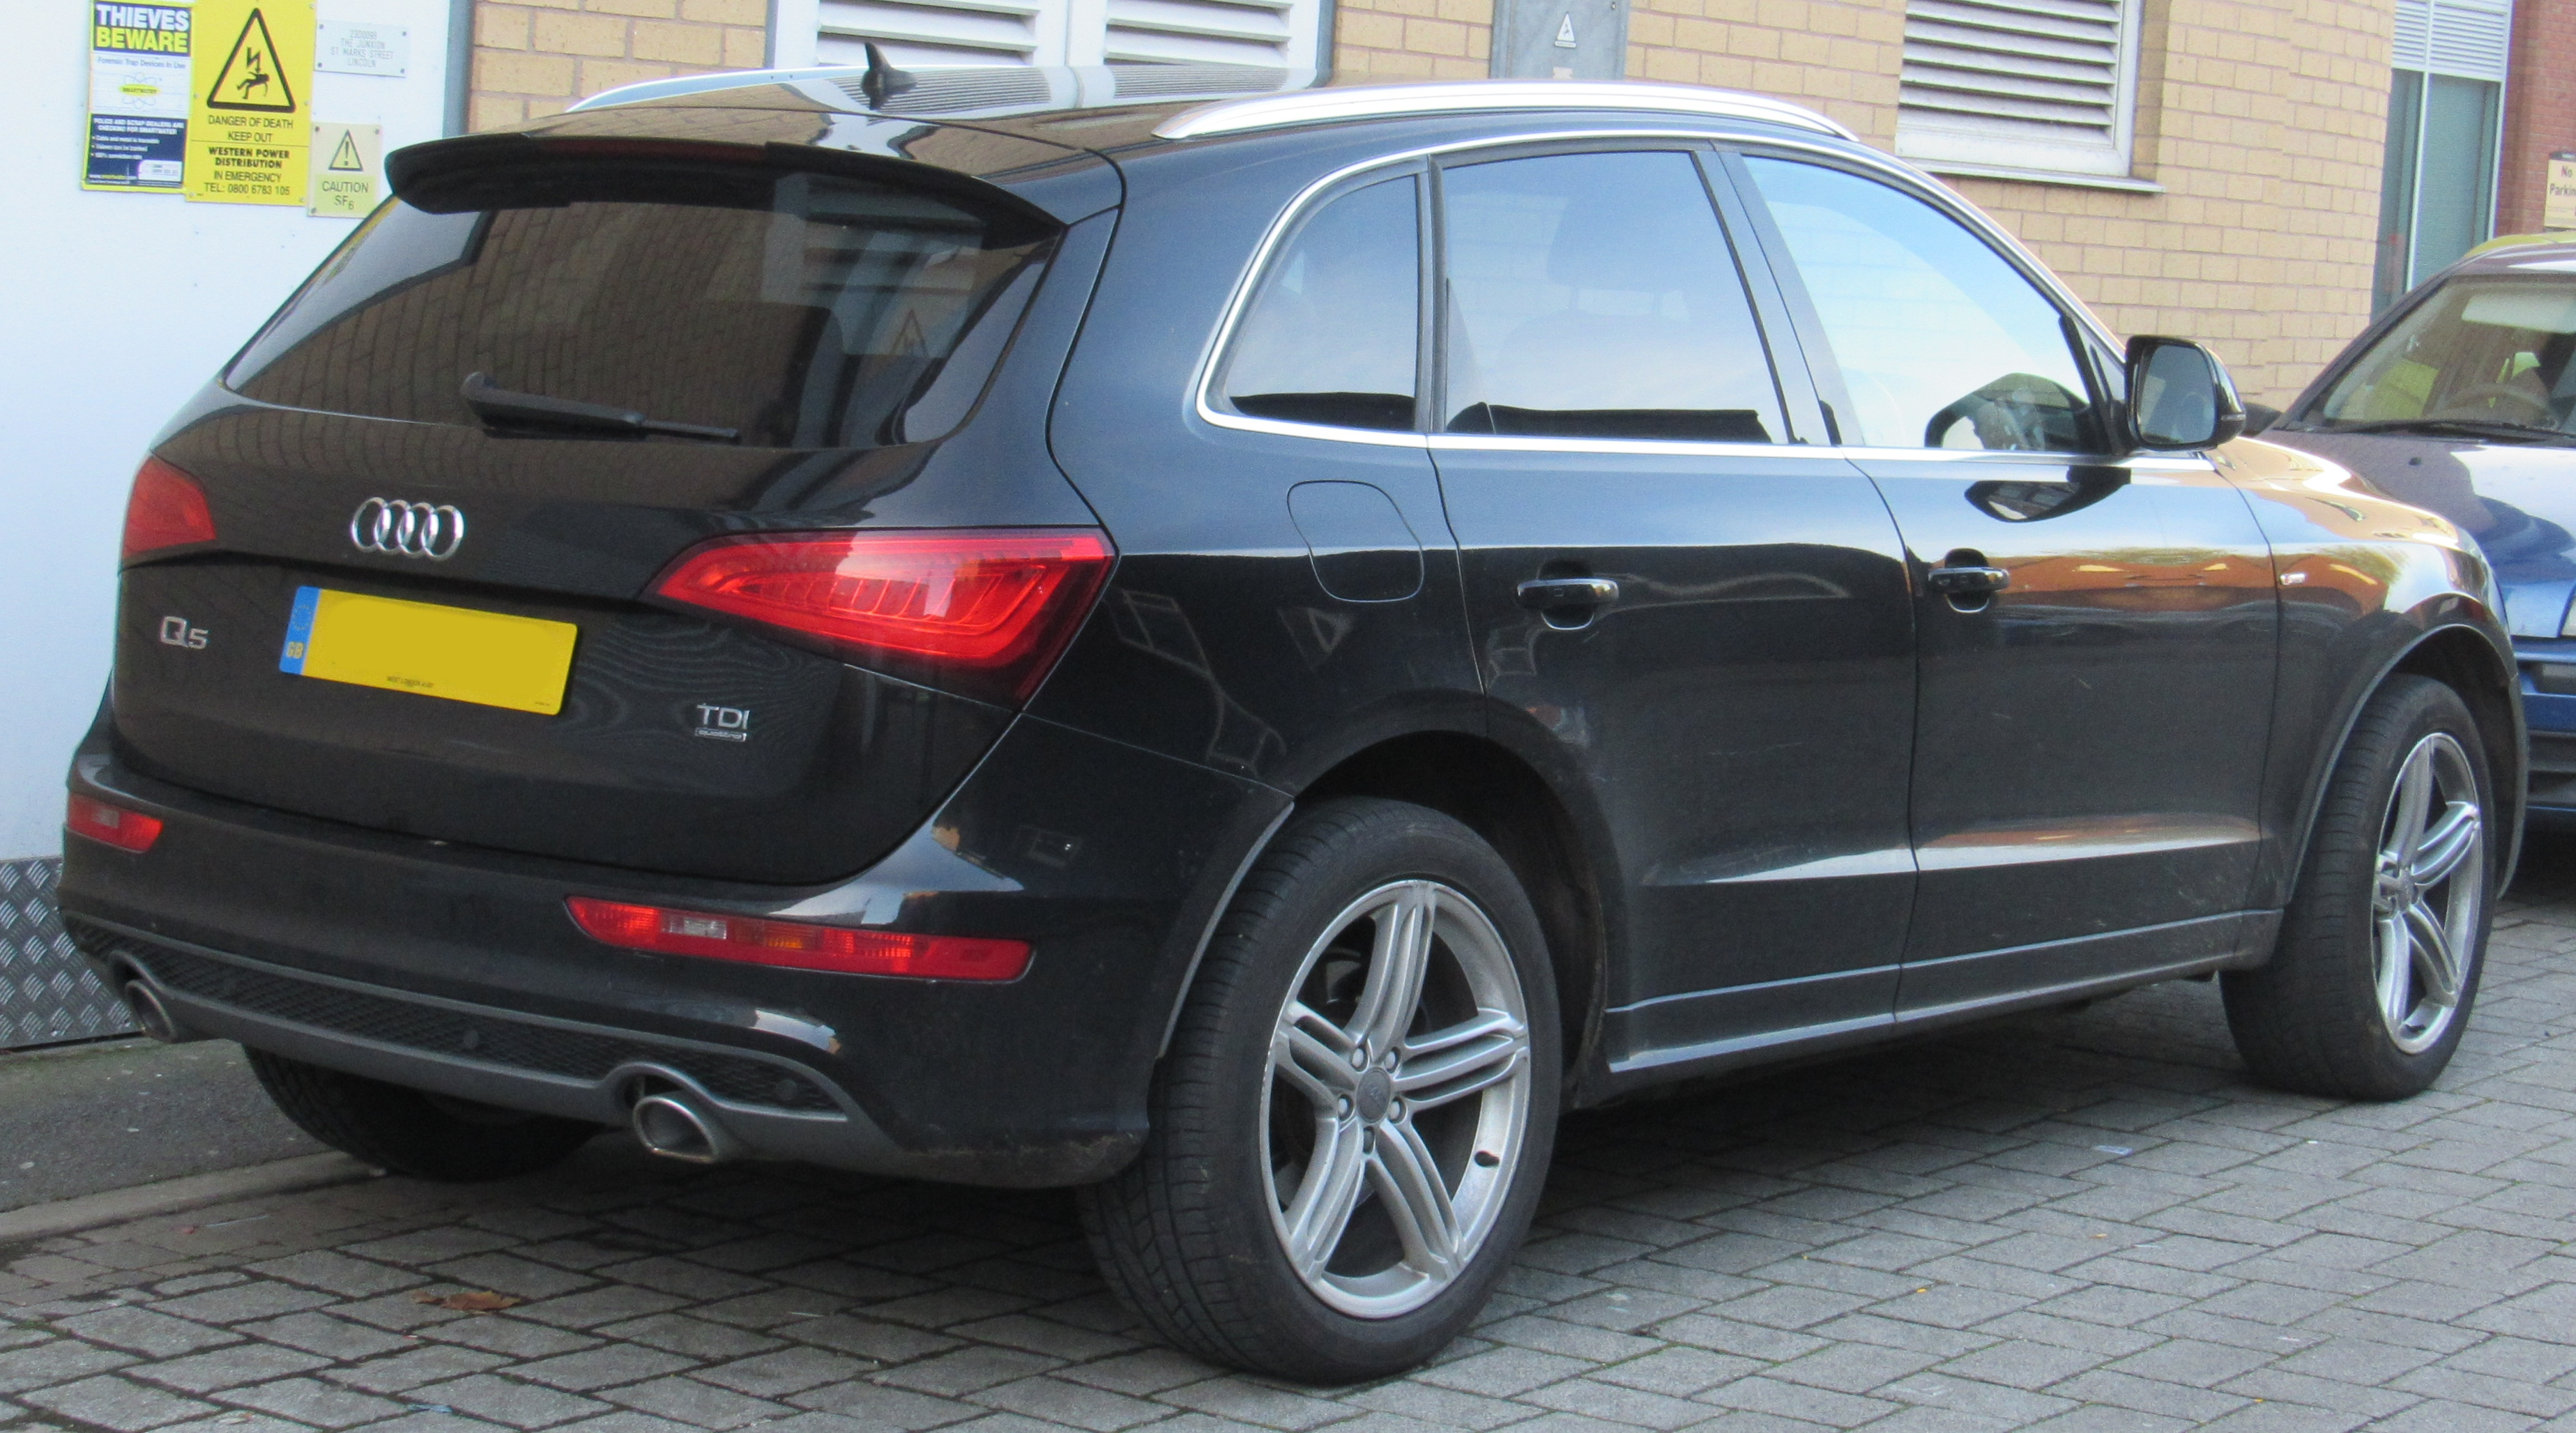 file 2014 audi q5 s line plus tdi quattro 3 0. Black Bedroom Furniture Sets. Home Design Ideas